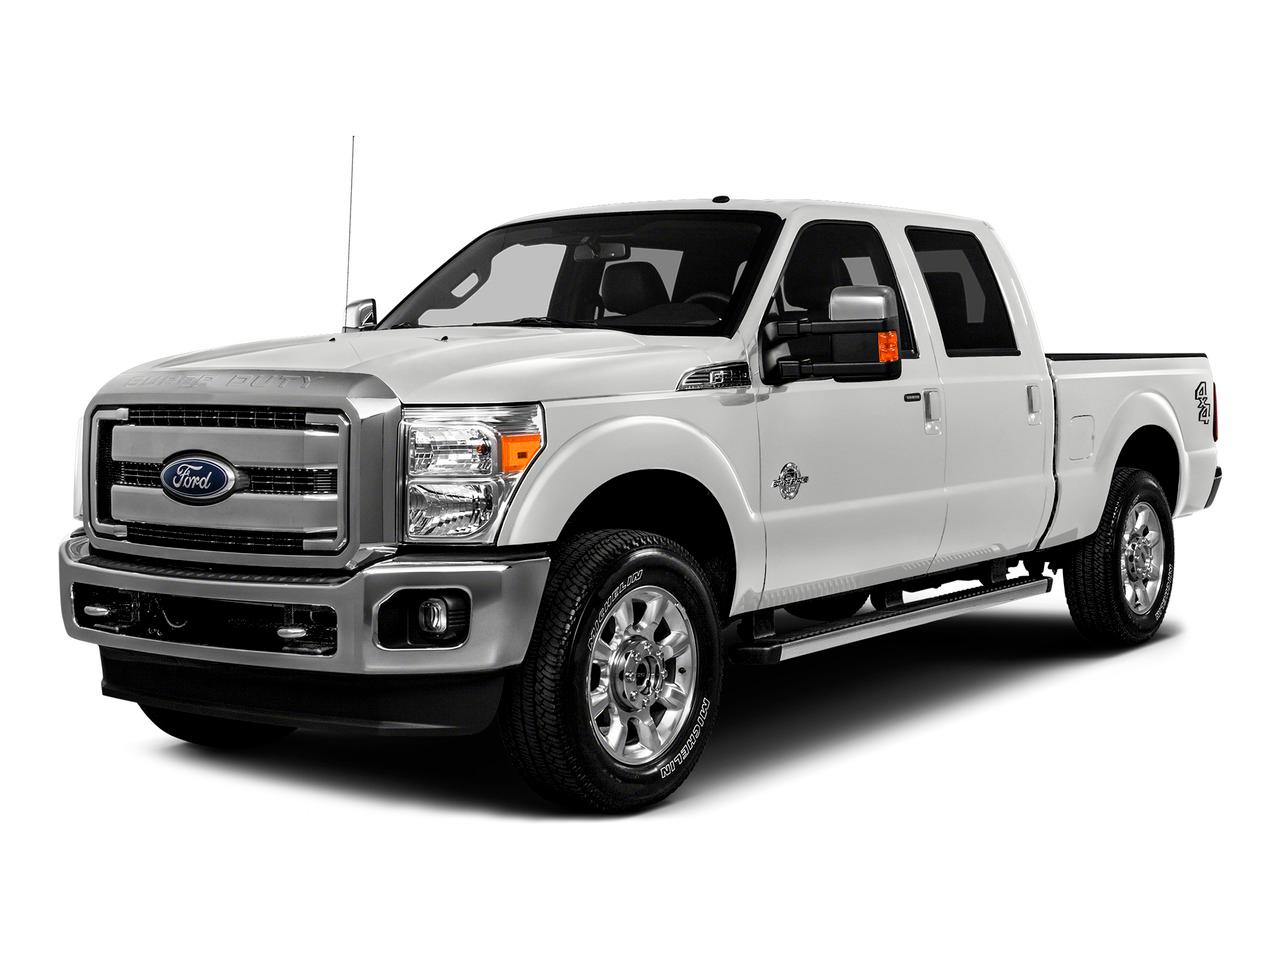 2016 Ford Super Duty F-250 SRW Vehicle Photo in Cary, NC 27511